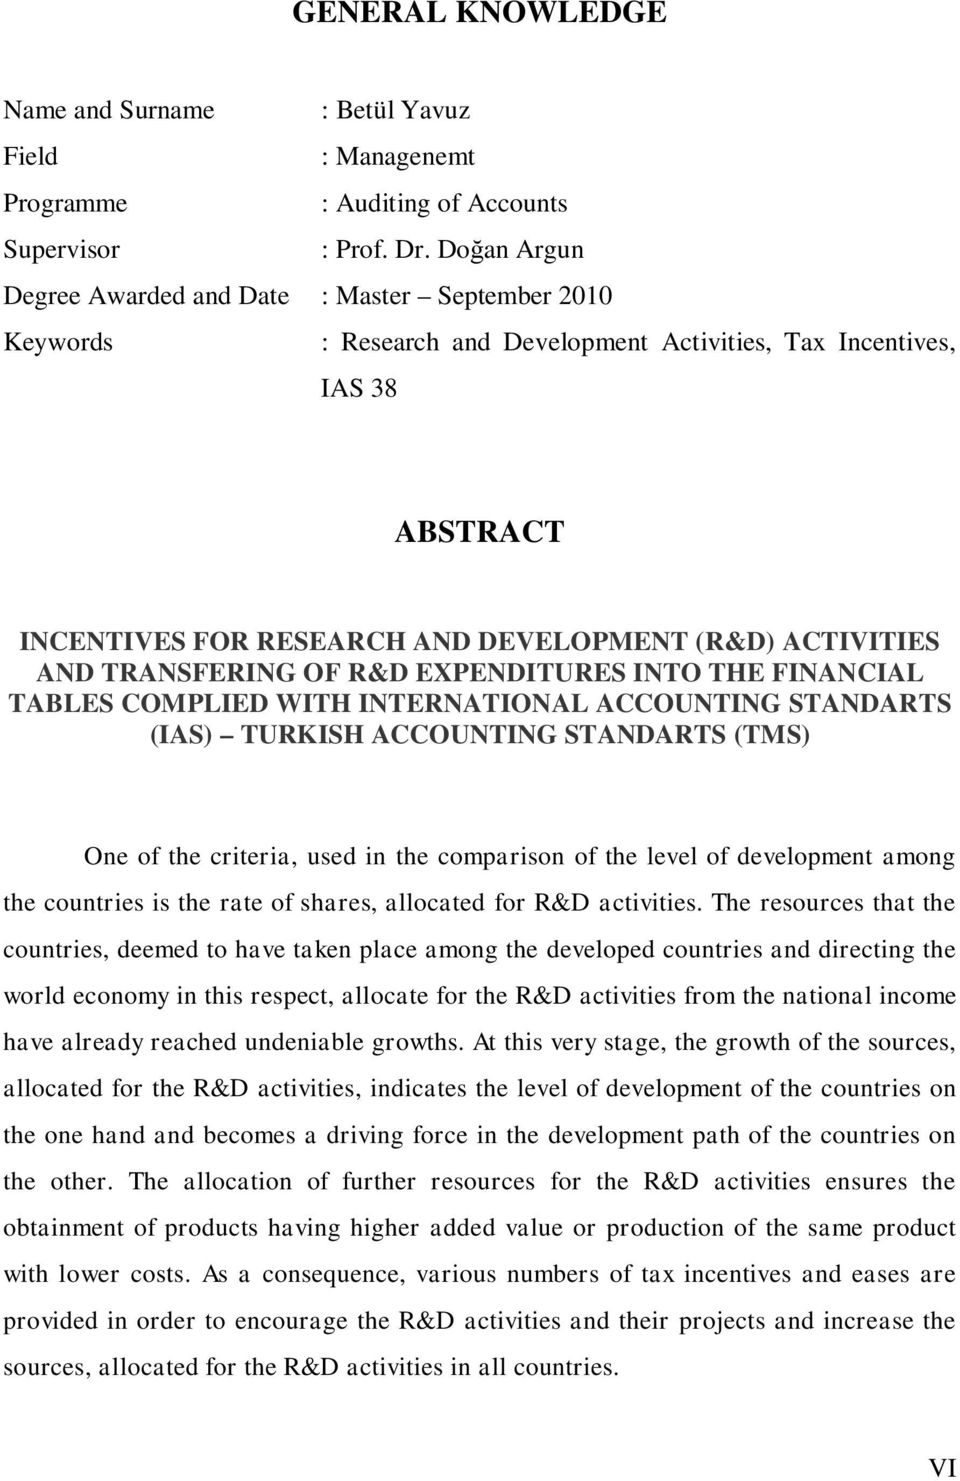 AND TRANSFERING OF R&D EXPENDITURES INTO THE FINANCIAL TABLES COMPLIED WITH INTERNATIONAL ACCOUNTING STANDARTS (IAS) TURKISH ACCOUNTING STANDARTS (TMS) One of the criteria, used in the comparison of